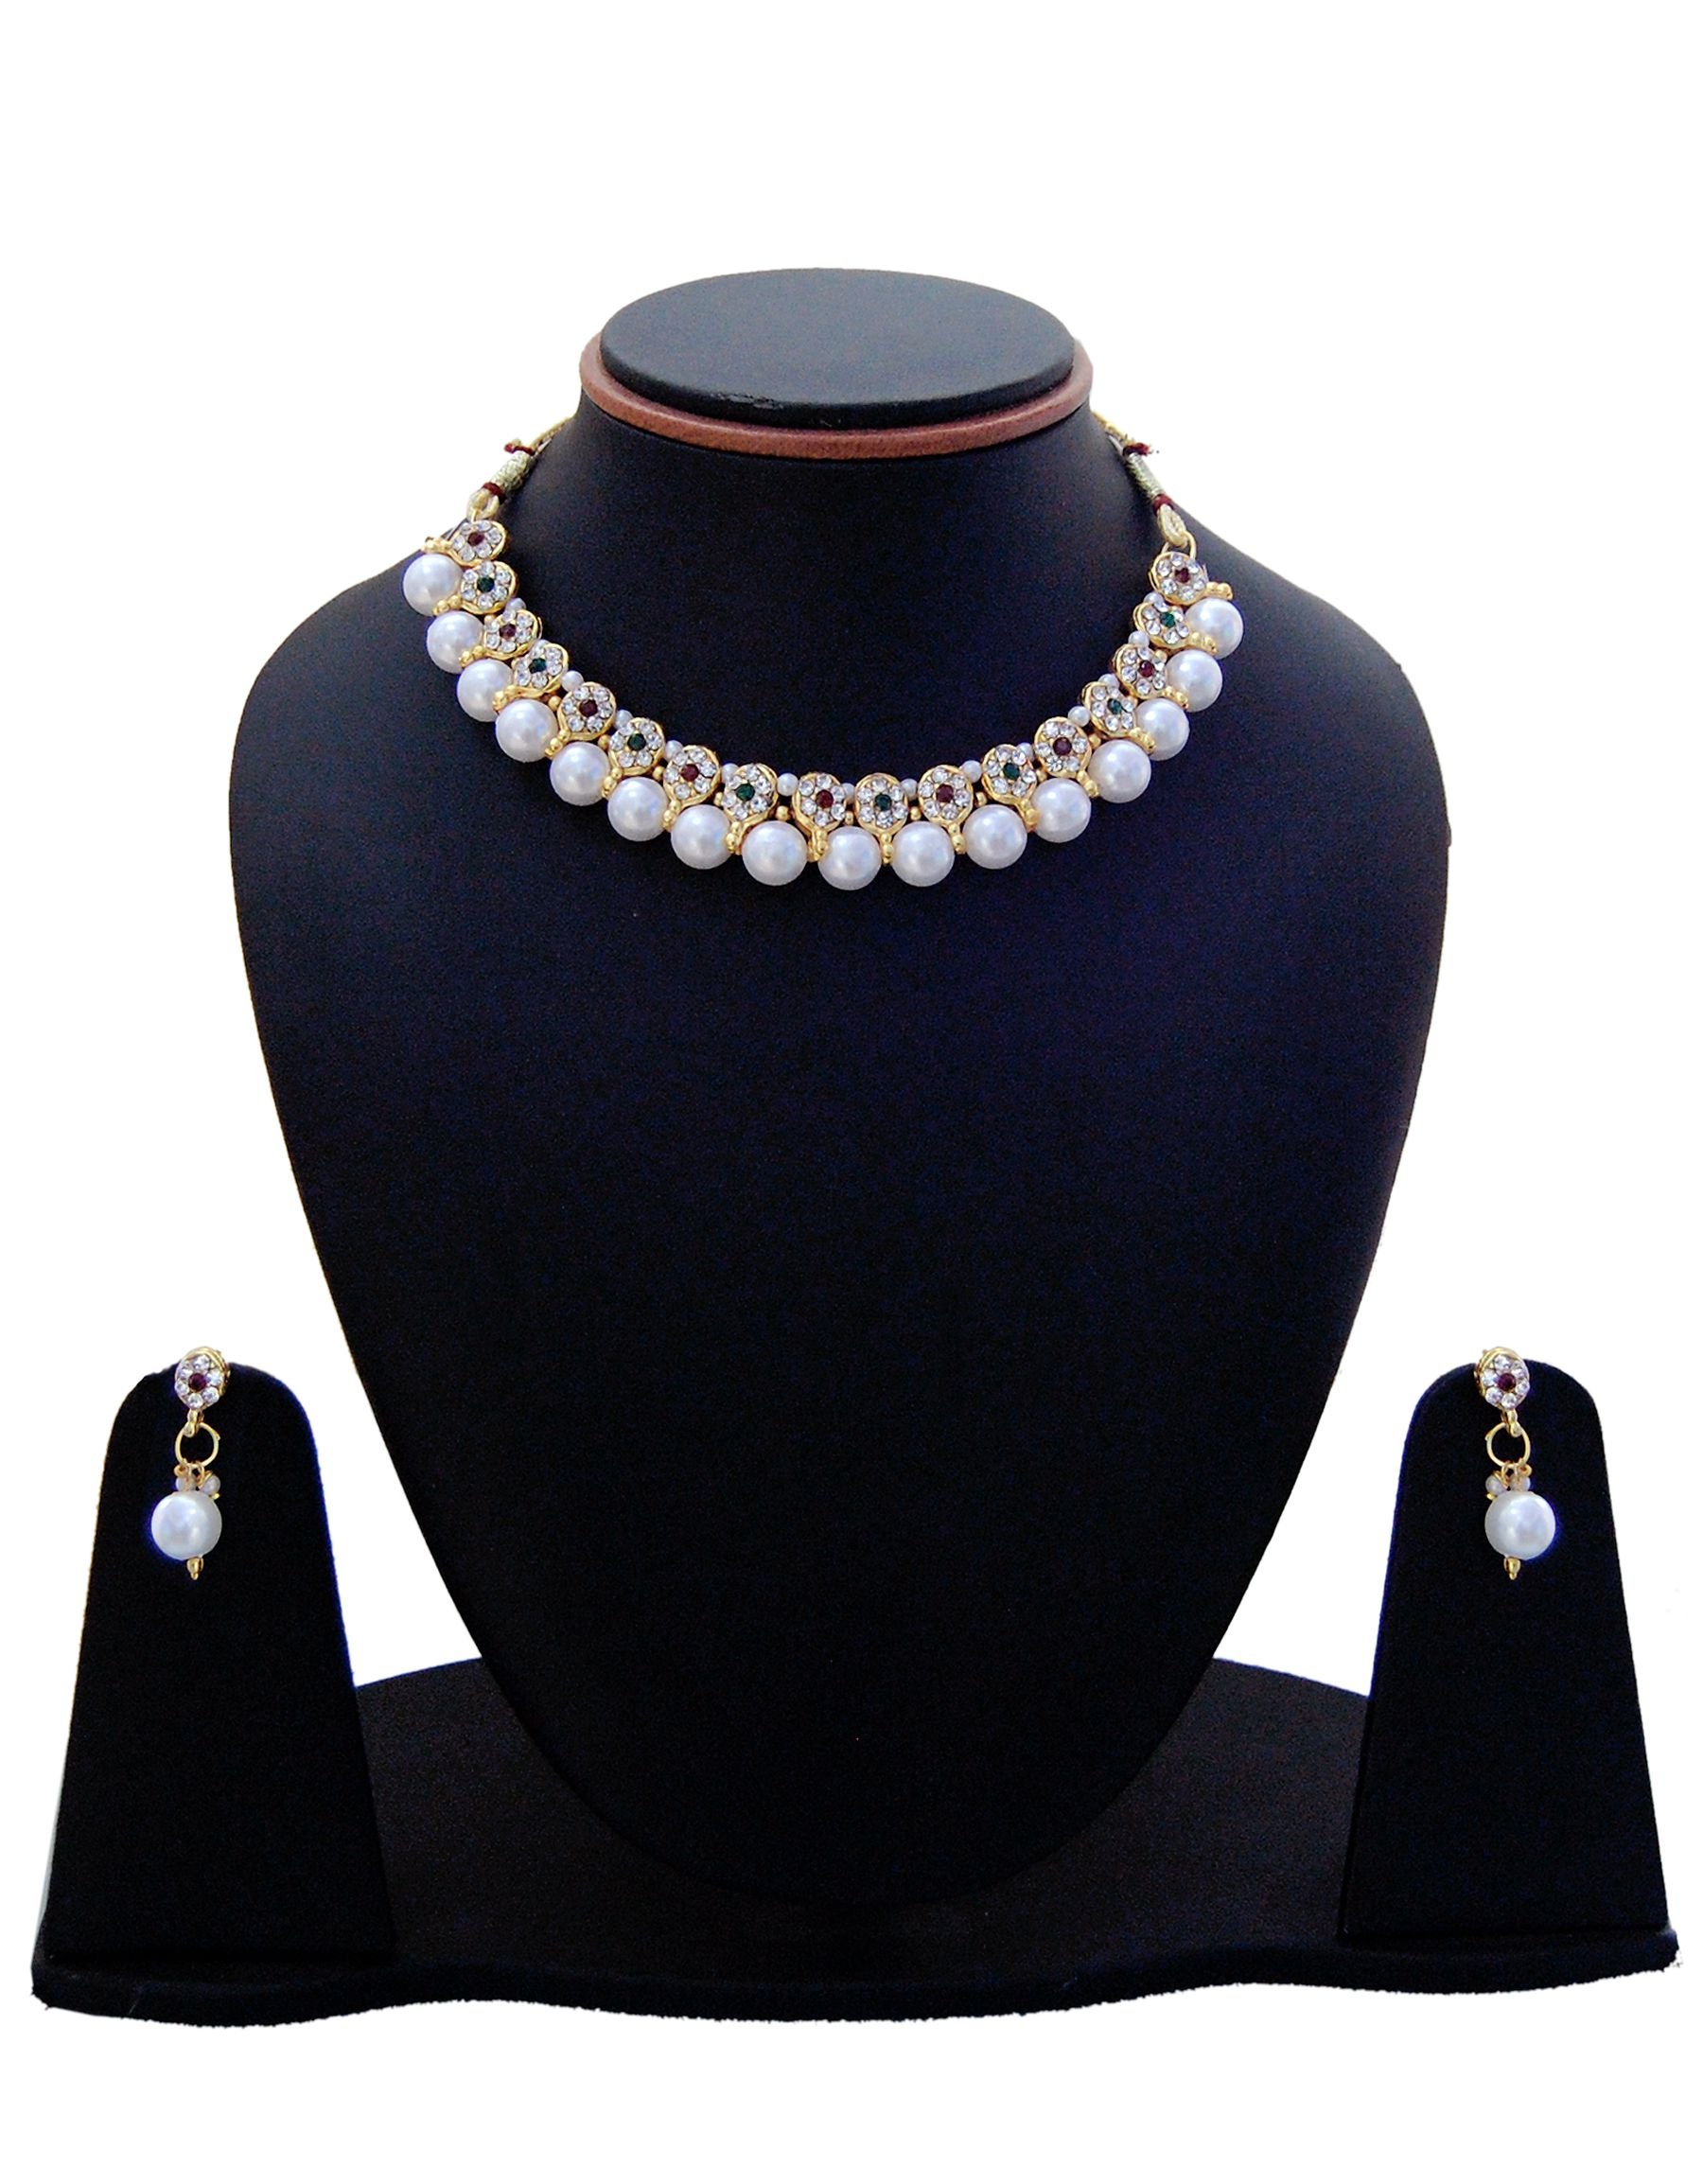 4bebcbdf0d0 Manukunj Pearl Necklace Set - Buy Manukunj Pearl Necklace Set Online at Best  Prices in India on Snapdeal